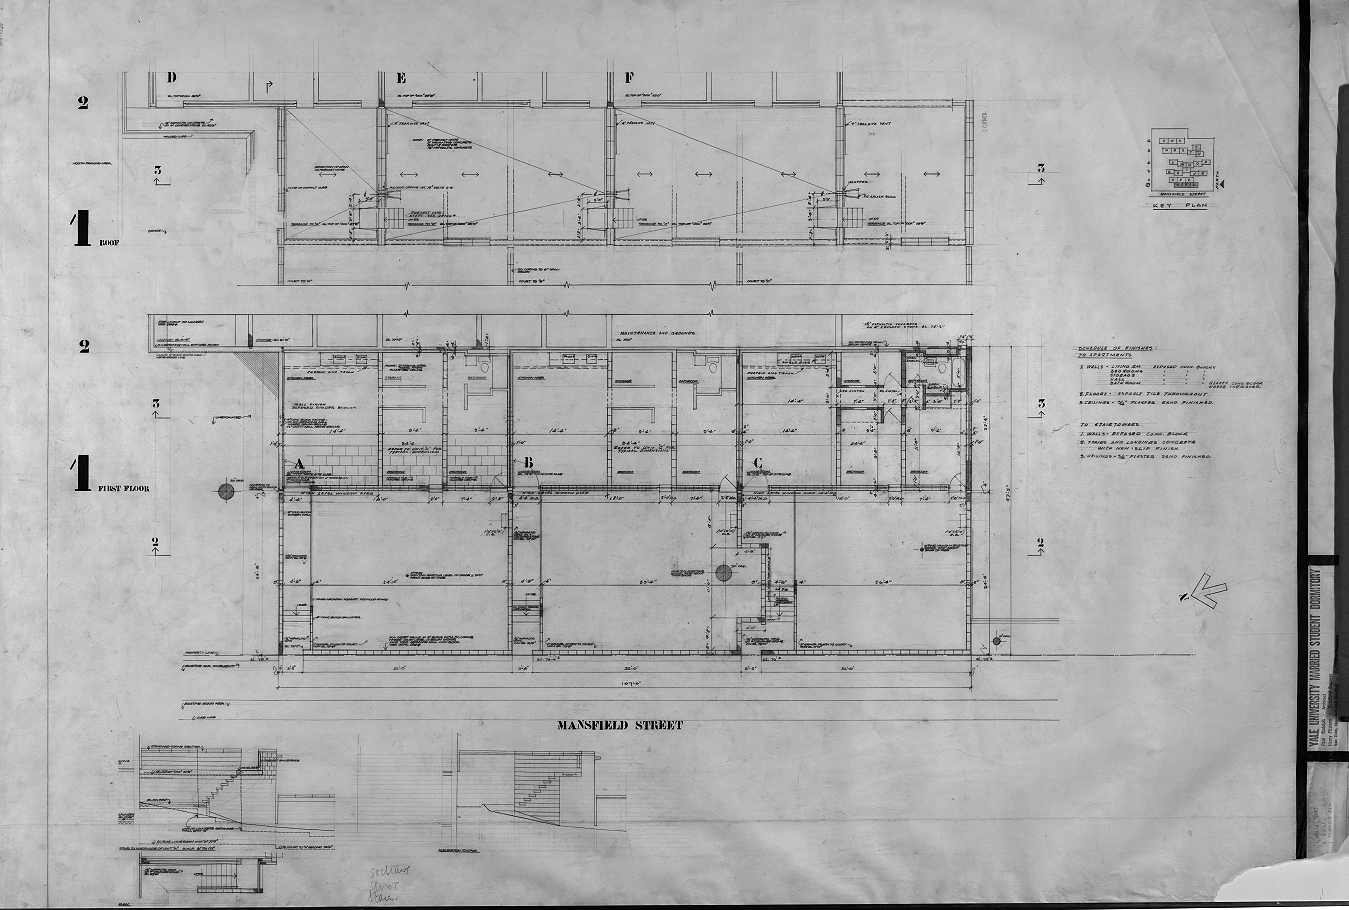 Married student housing, Yale University, New Haven, Connecticut. Scheme 1. Section 1 Floor Plan.